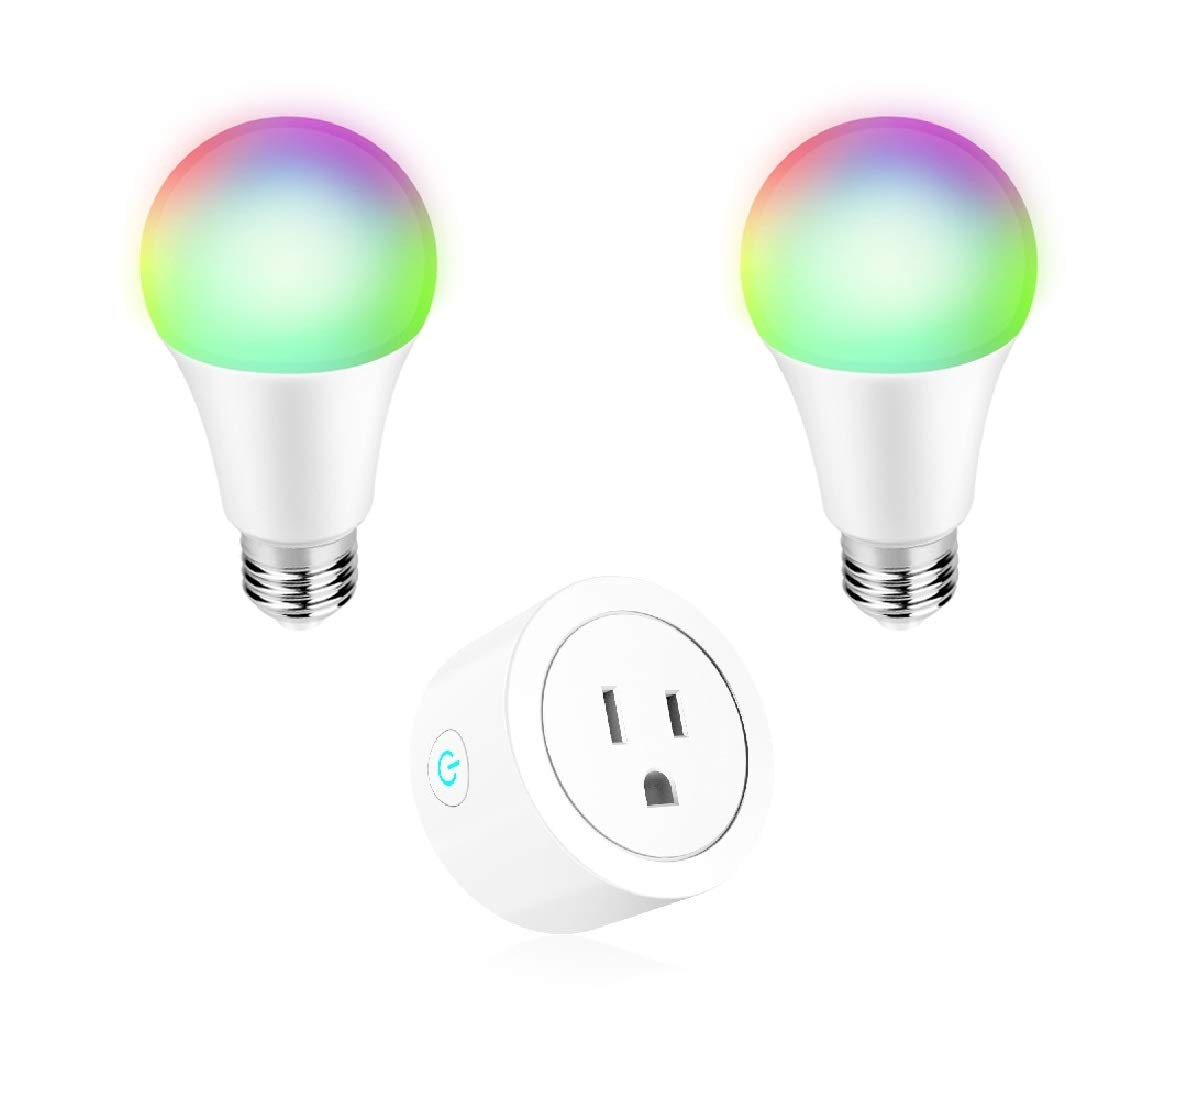 Smart Home Kit Mini WiFi Smart Plug and 2 A19 Smart Bulbs 60W Equivalent 16W RGB LED Light Dimmable Compatible with Alexa Google Home IFTTT Puji